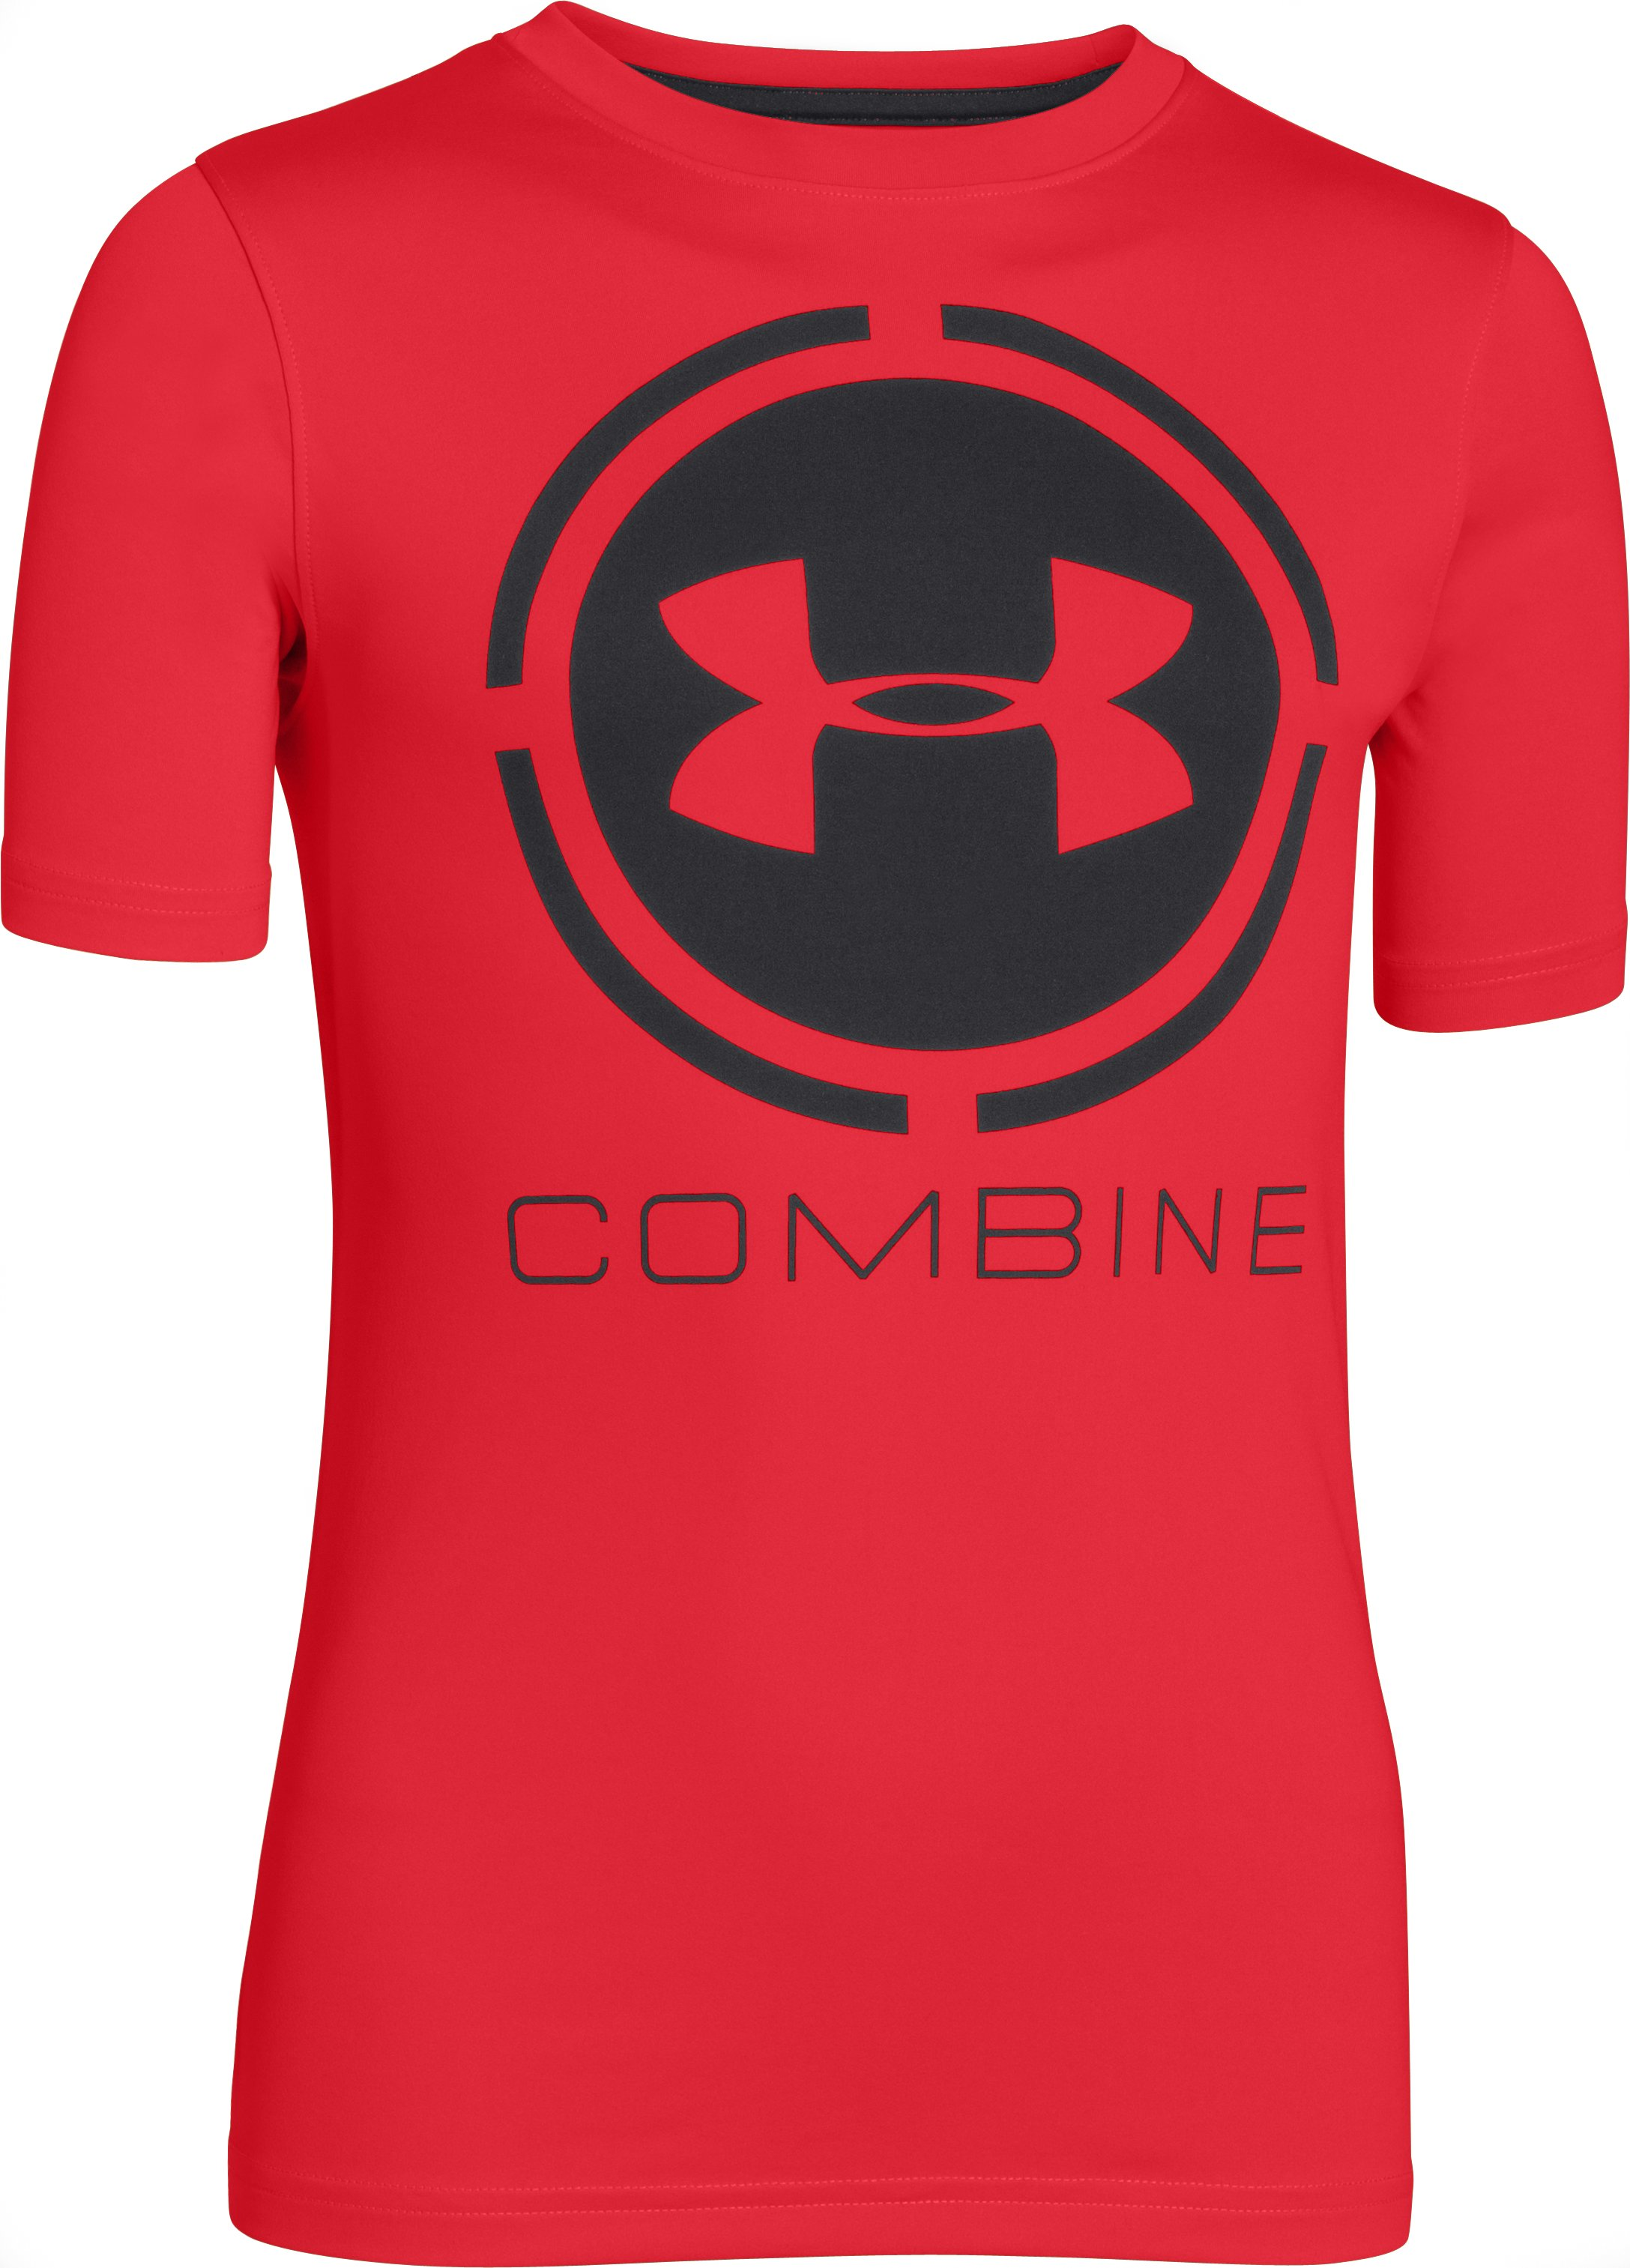 Boys' UA Combine® Training T-Shirt, RISK RED, zoomed image